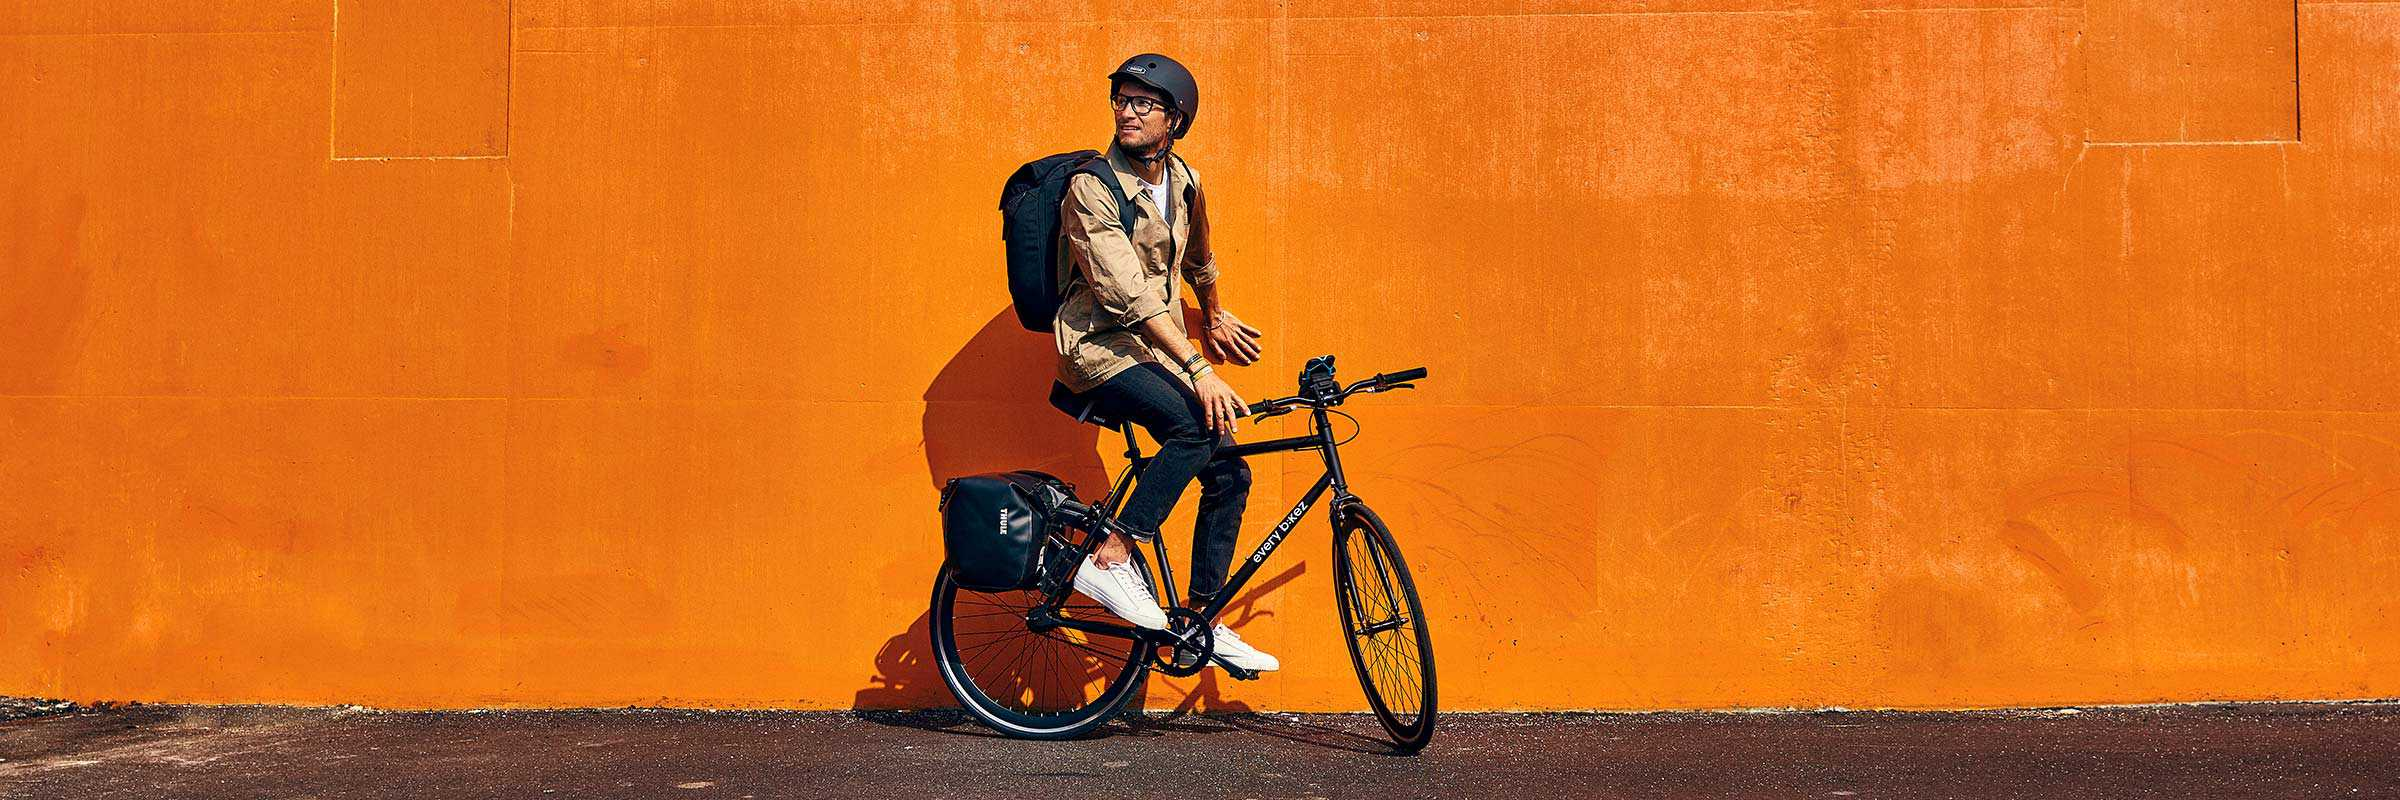 Gear for the Streets: Discover Urban Cycling Apparel